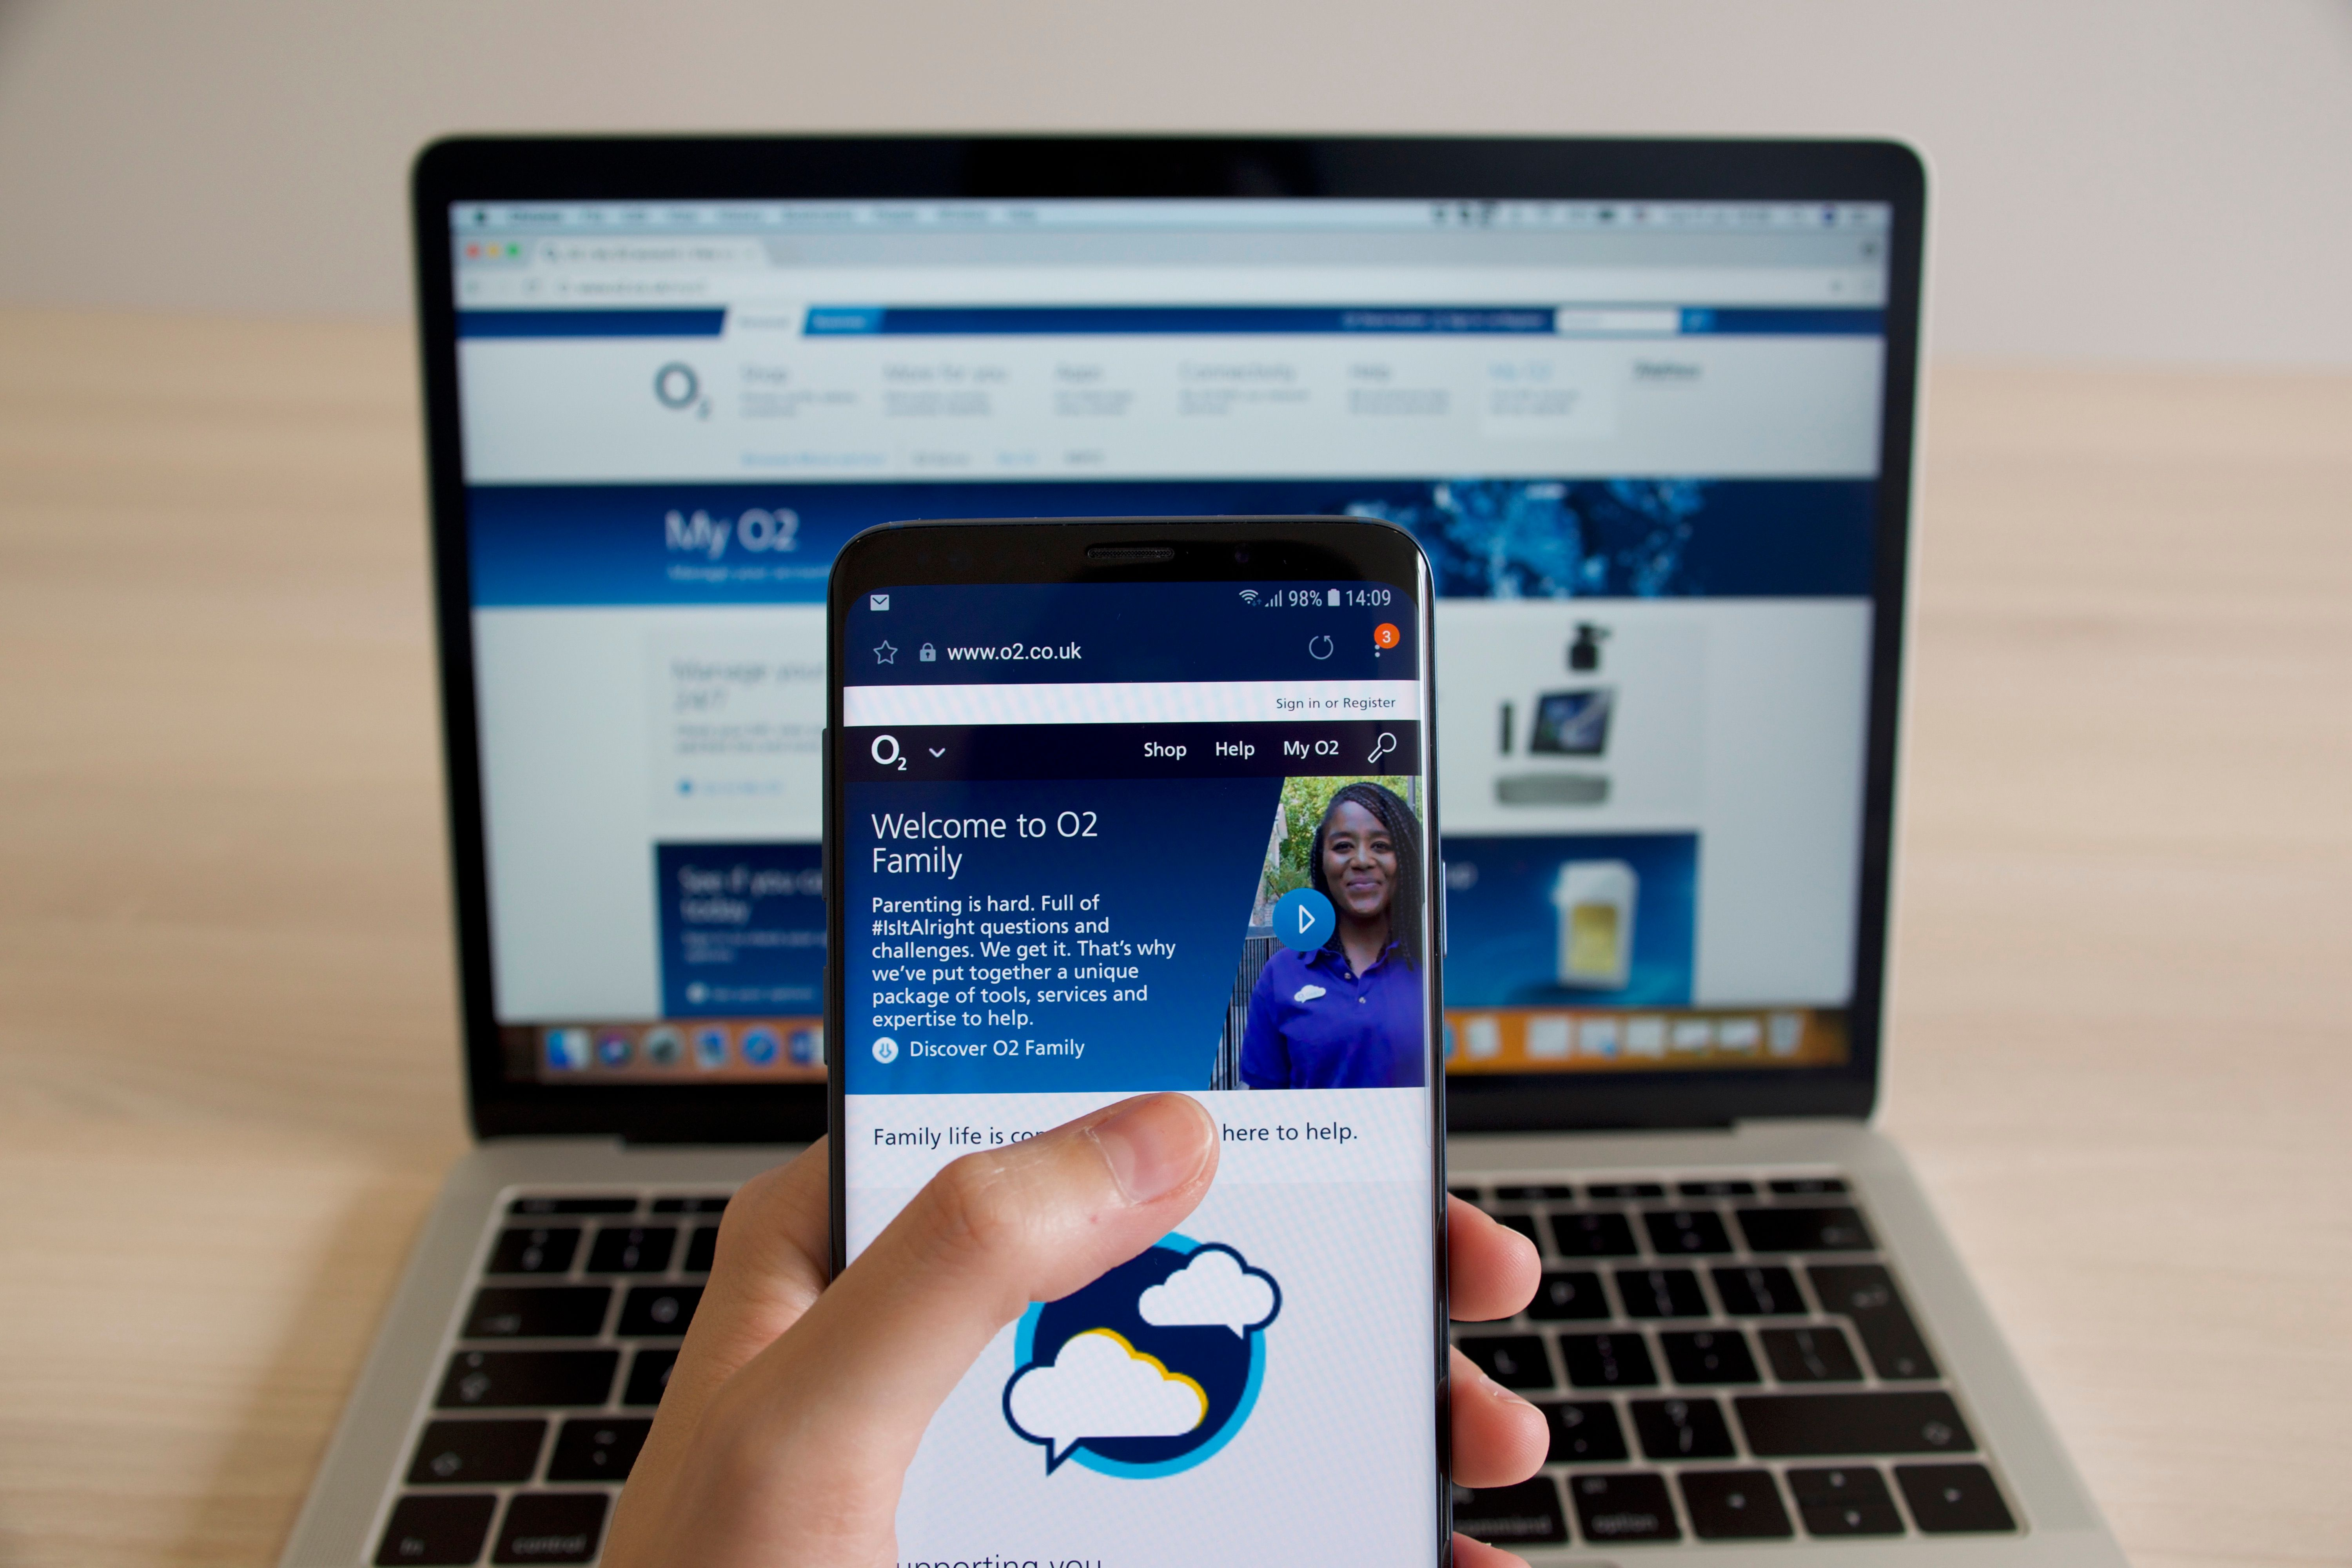 O2 has some new and attractive offers for their new and existing customers